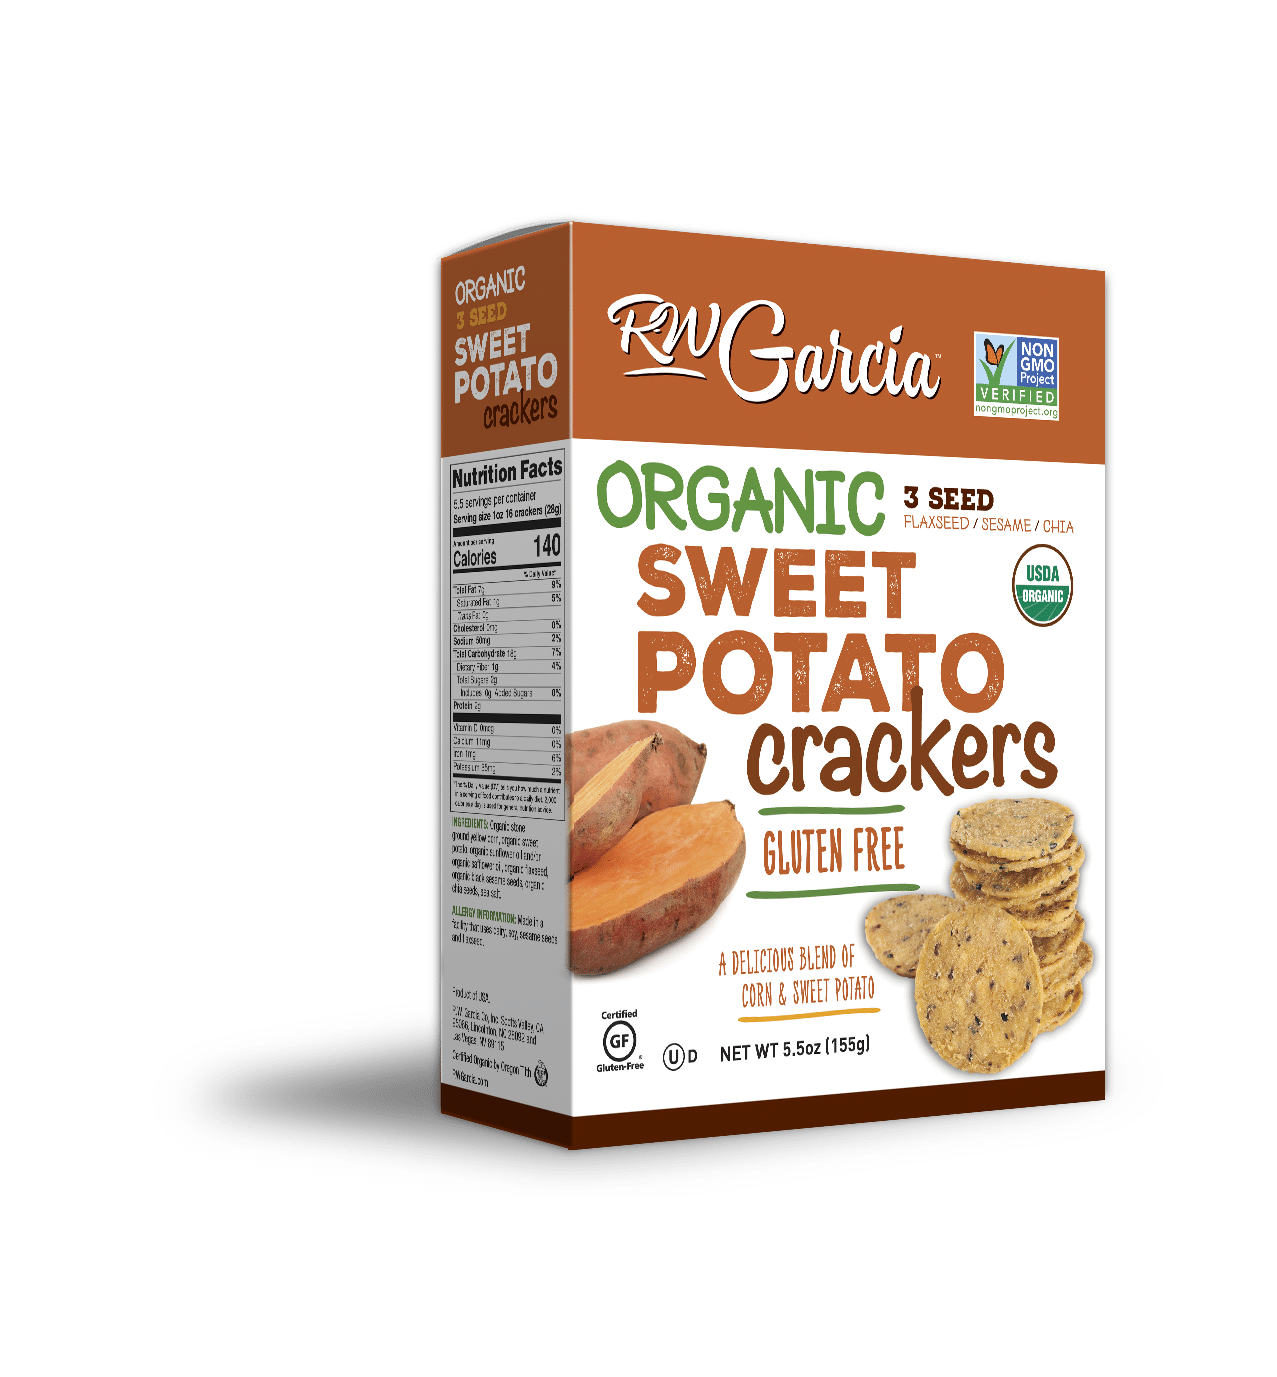 RWG_SweetPotato_Cracker_Org_5.5oz_3D_072719